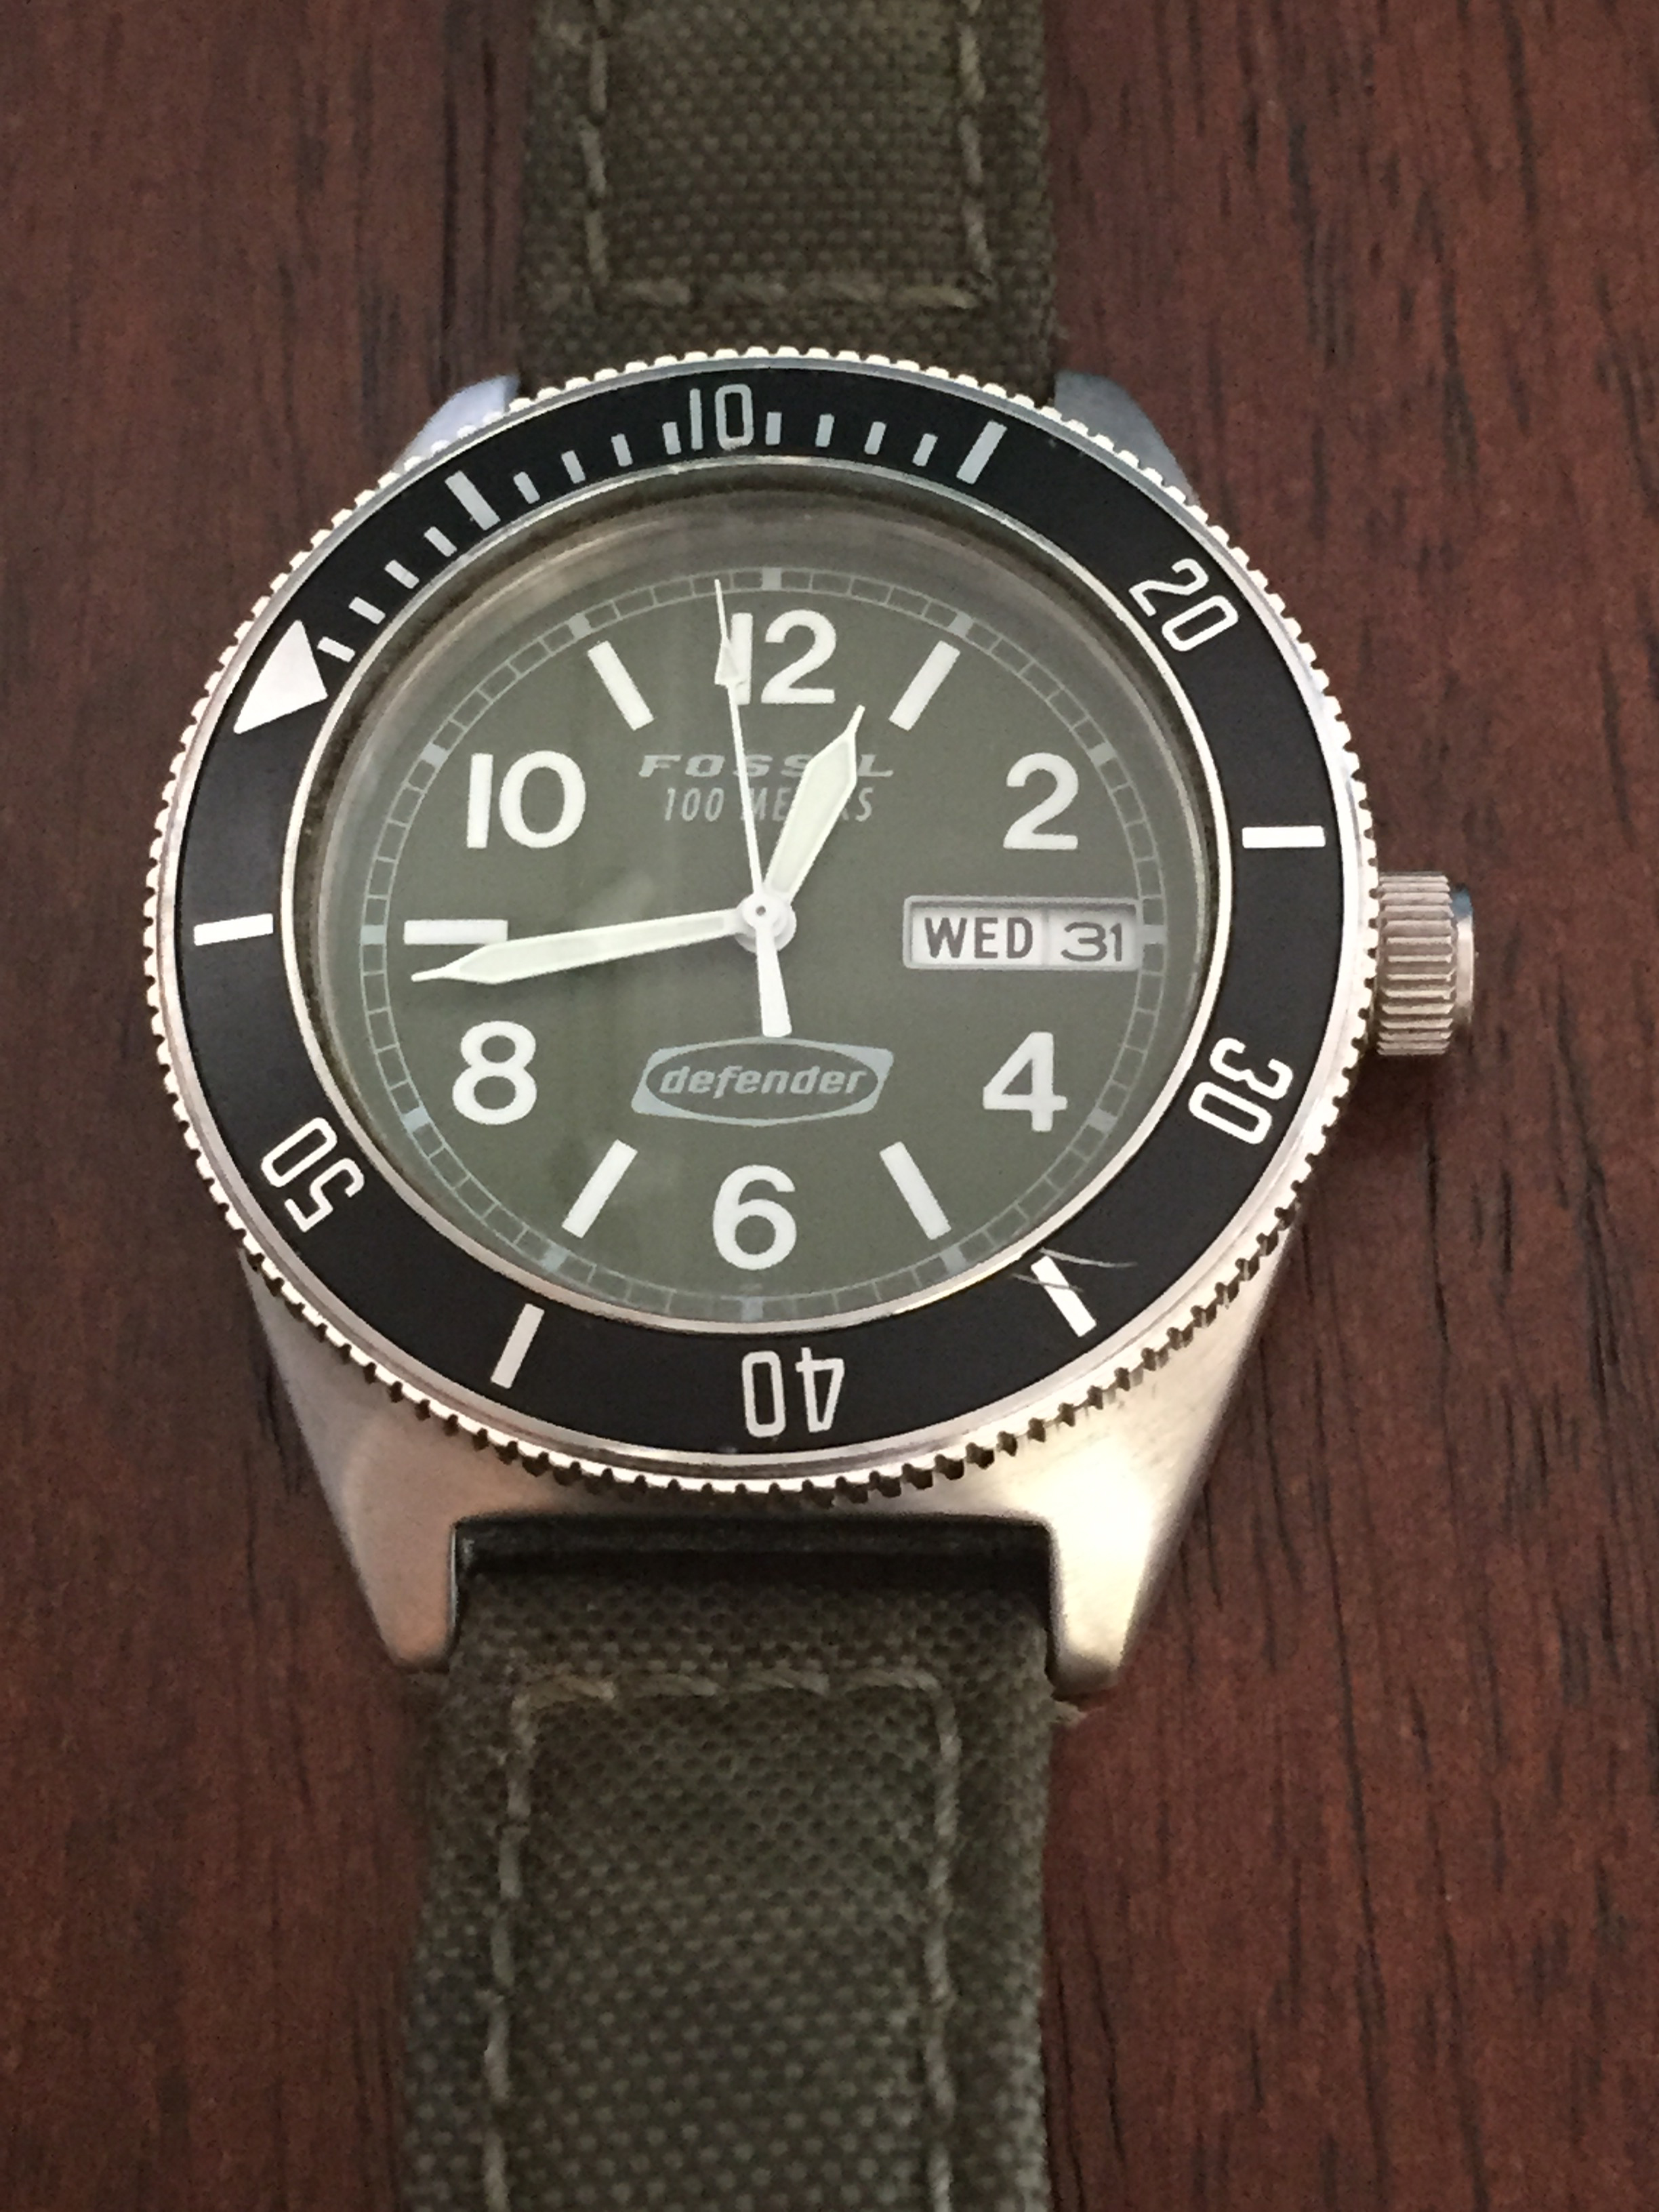 DE-1542 with green canvas band.